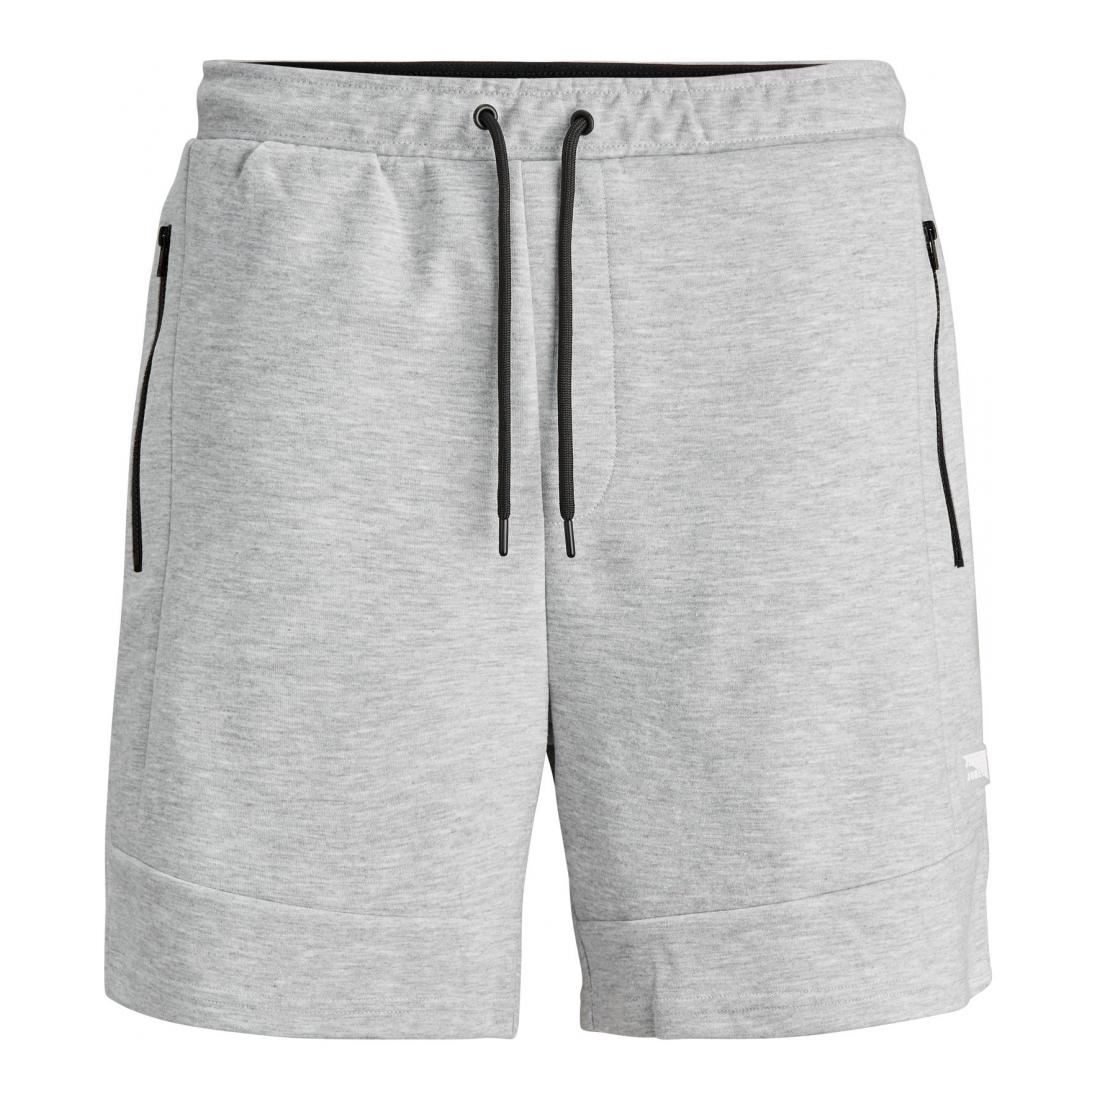 Jack & Jones Bermuda/Shorts Herren JJIAIR SWEAT SHORTS NB ST